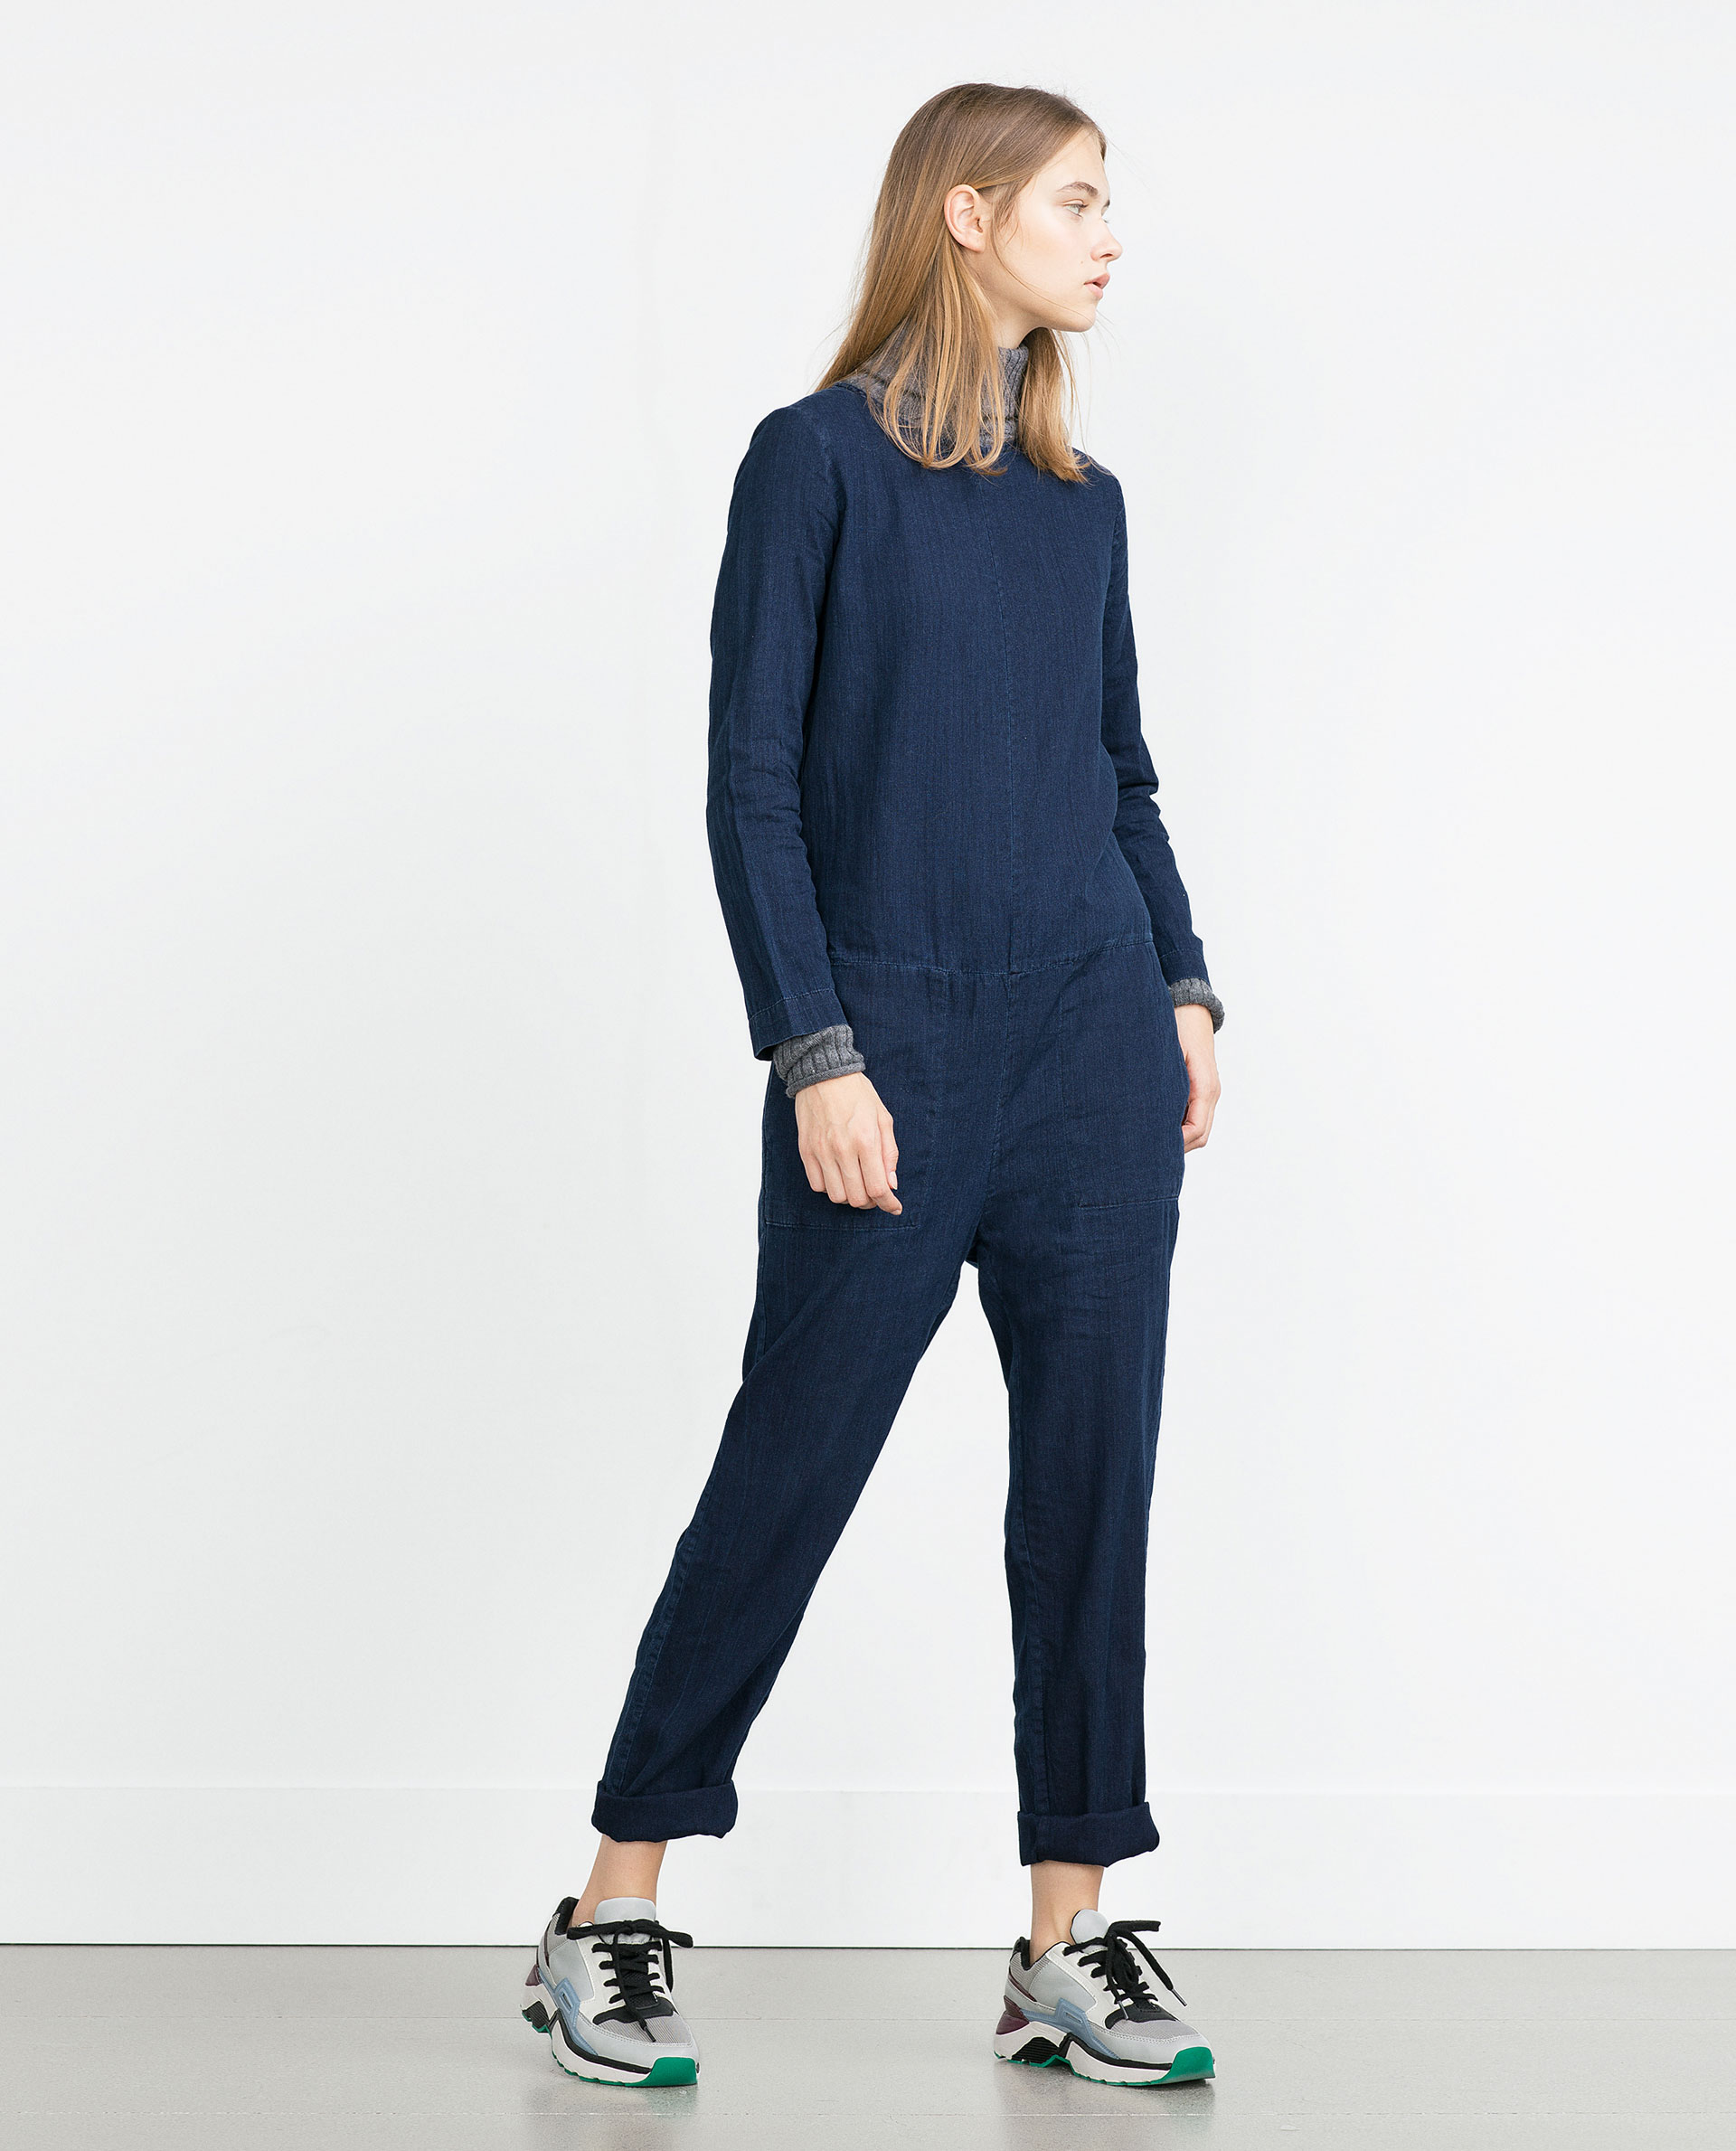 Denim Jumpsuits For Spring Summer 2019 Become Chic